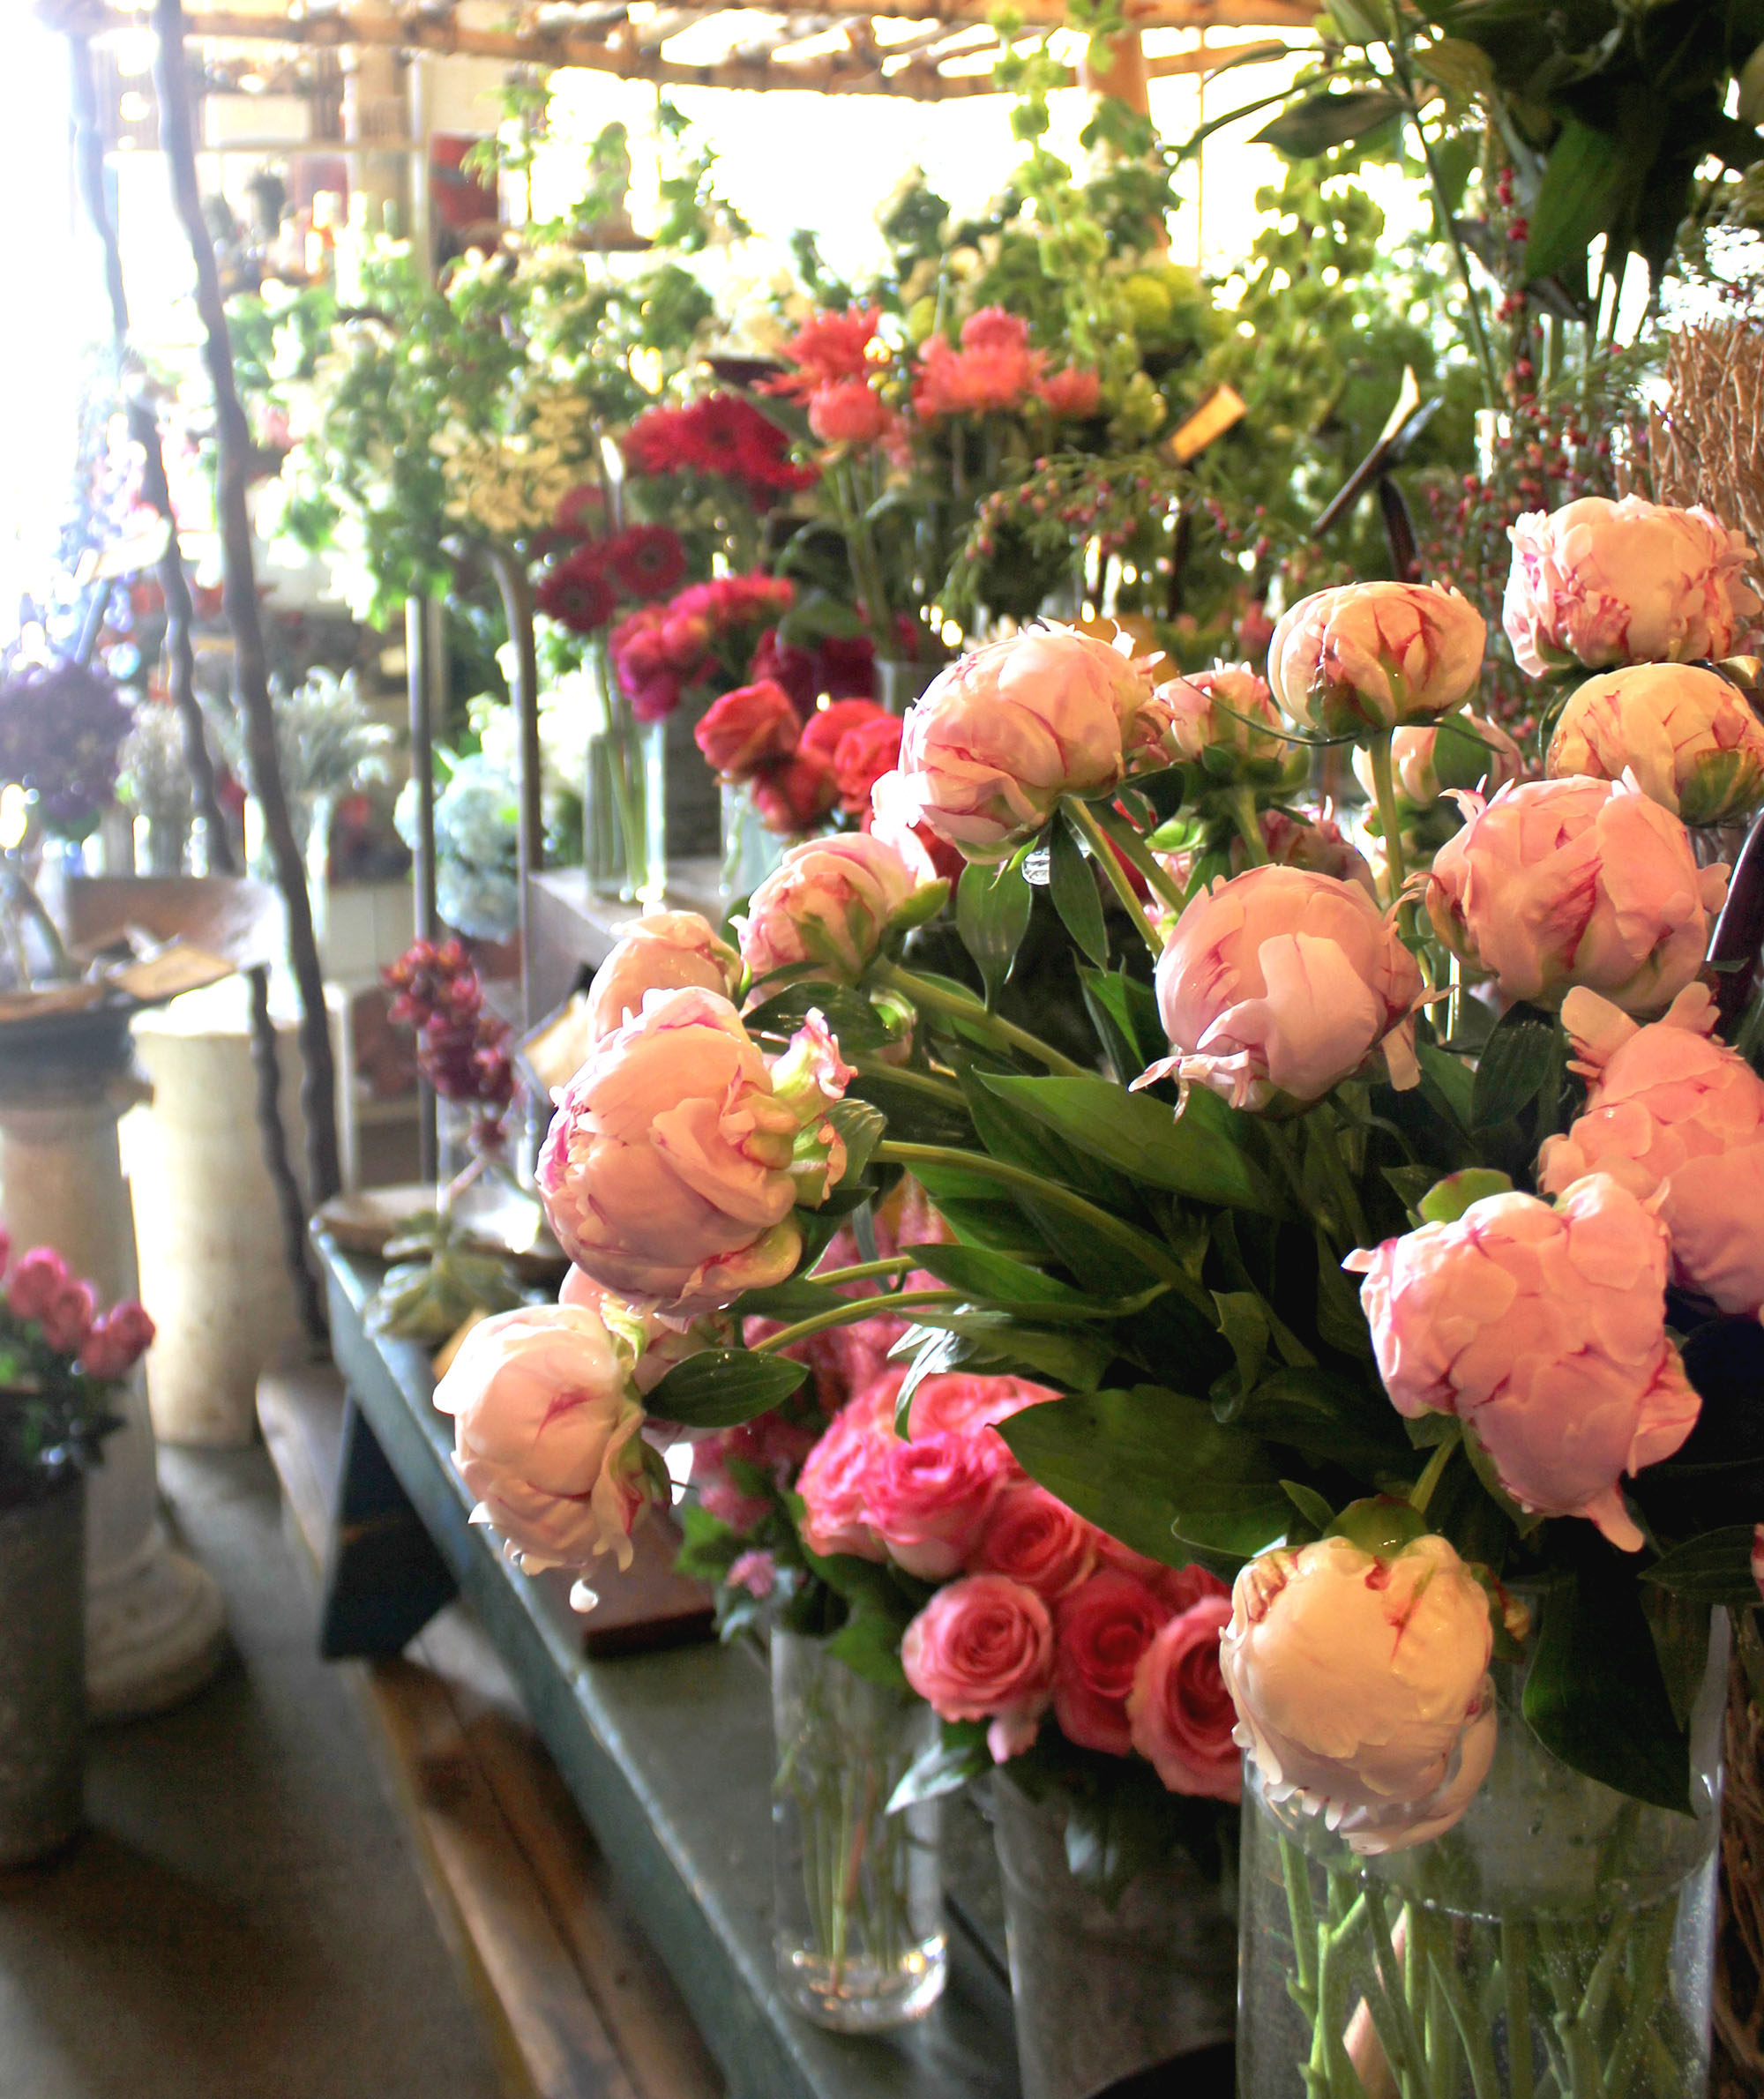 Arenas flowers around the globe or grown for arenas to provide remarkable color fragrance and longevity from this market the talented design team cultivates and izmirmasajfo